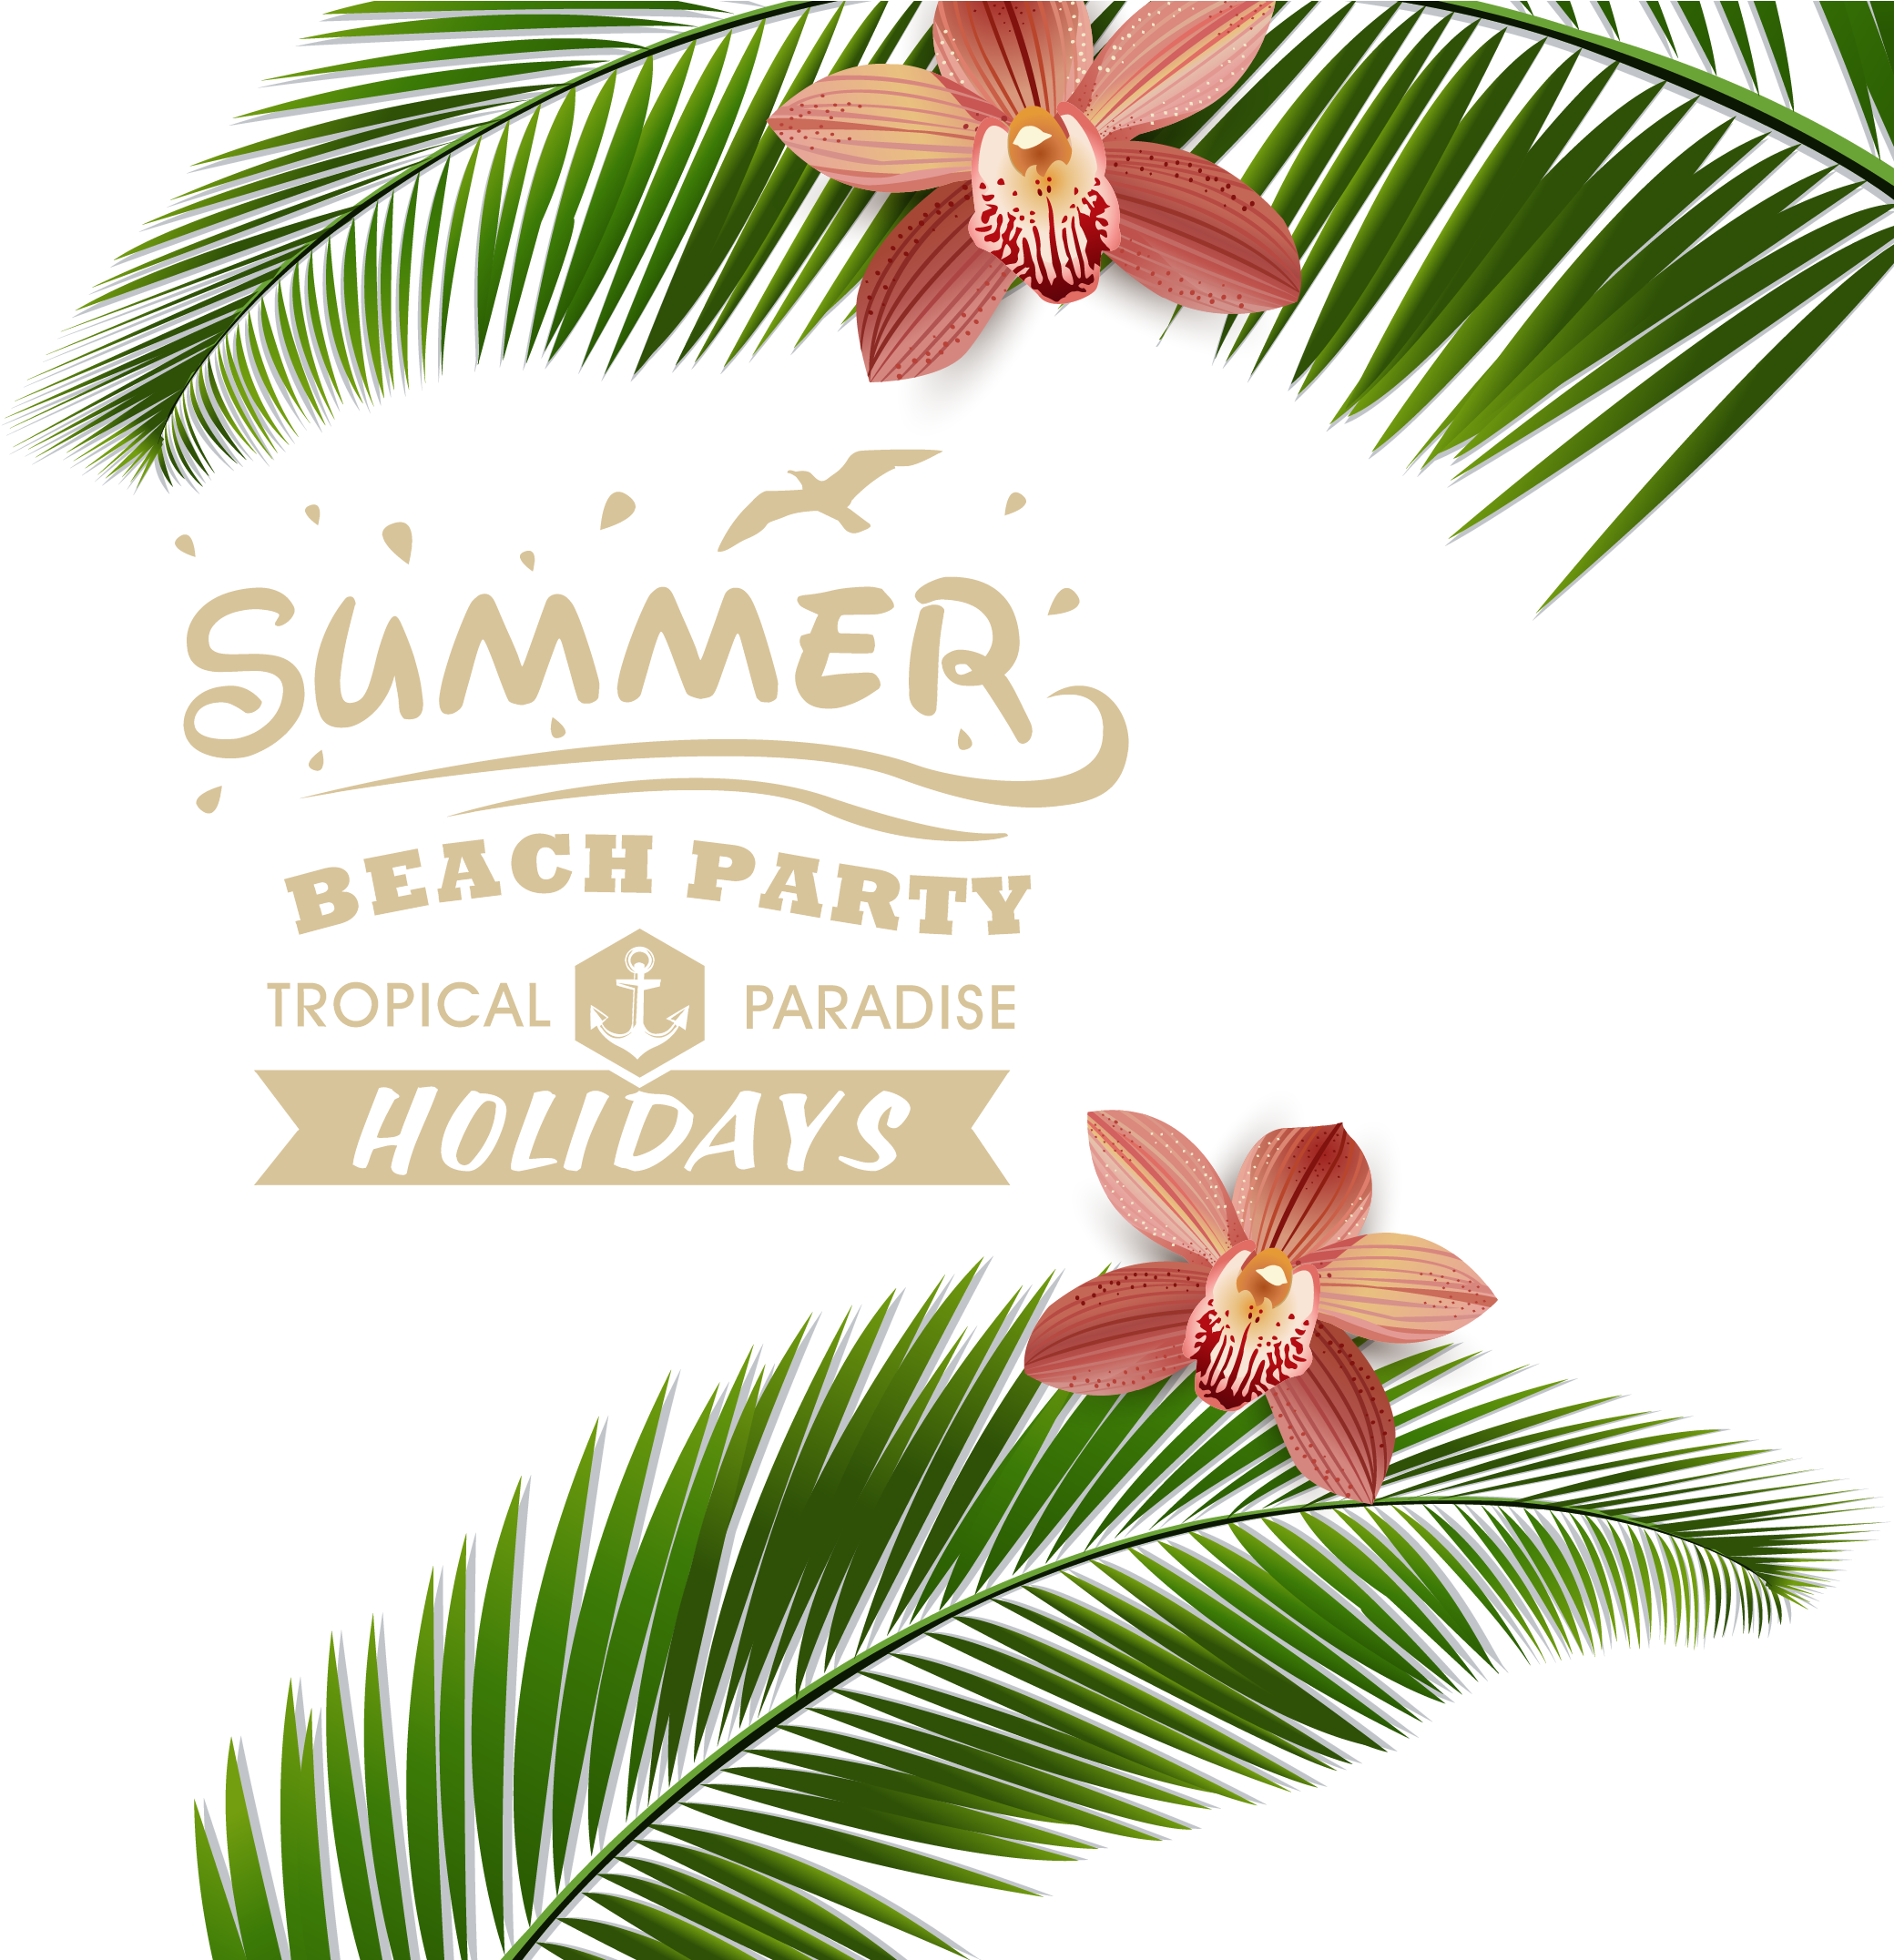 HD Resort Png Image File.